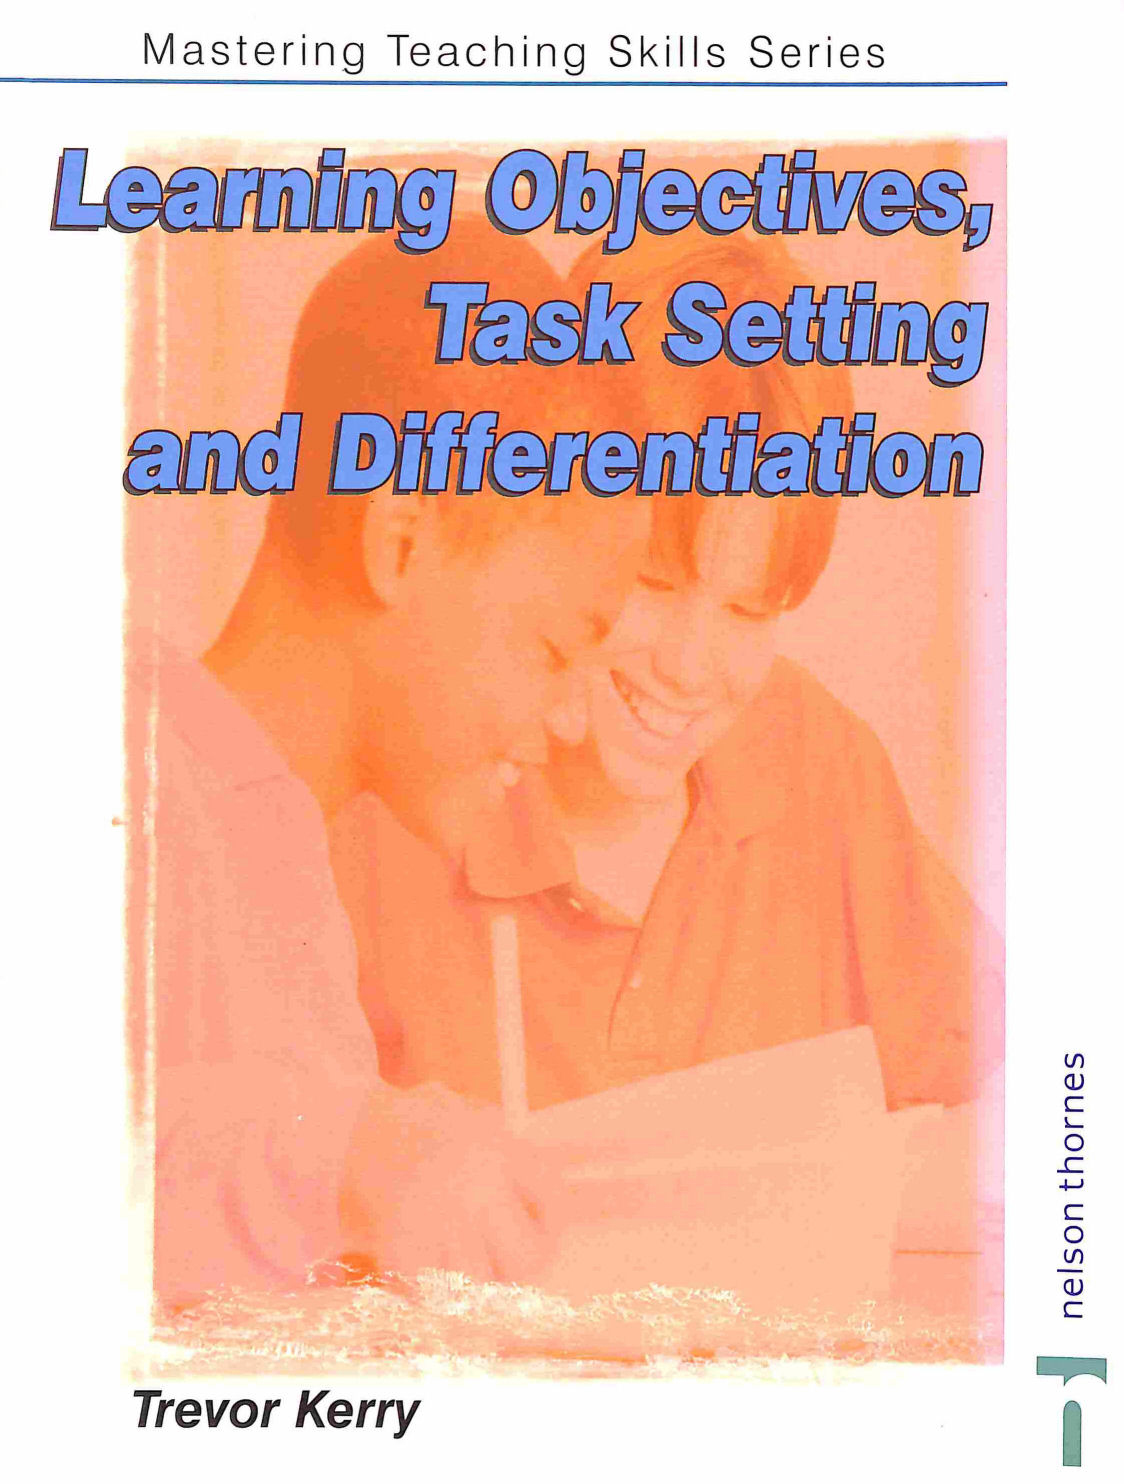 Image for Mastering Teaching Skills: Learning Objectives, Task-setting and Differentiation: Learning Objectives Task-setting and Differentiation